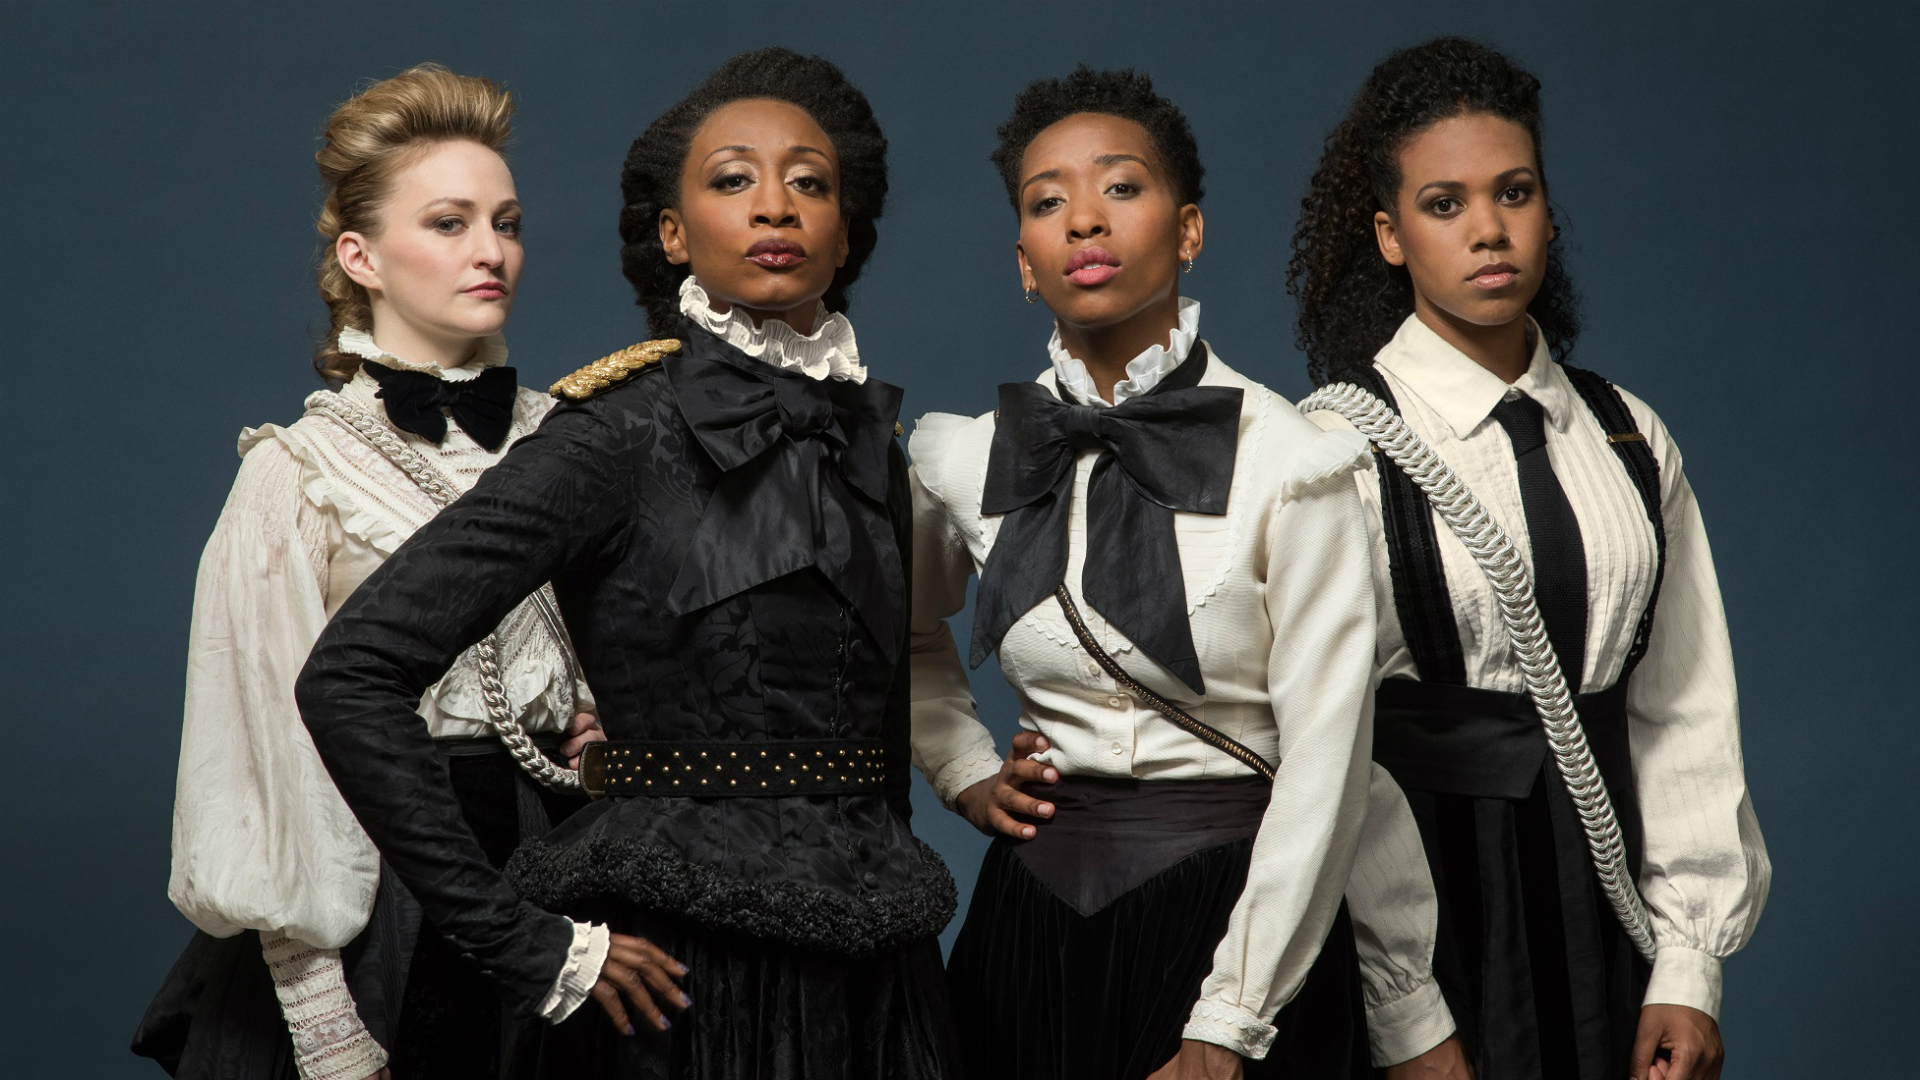 Carley Bawden, Beverley Knight, Genesis Lynea and Witney White, the stars of Sylvia, stand next to each other with stern expressions.